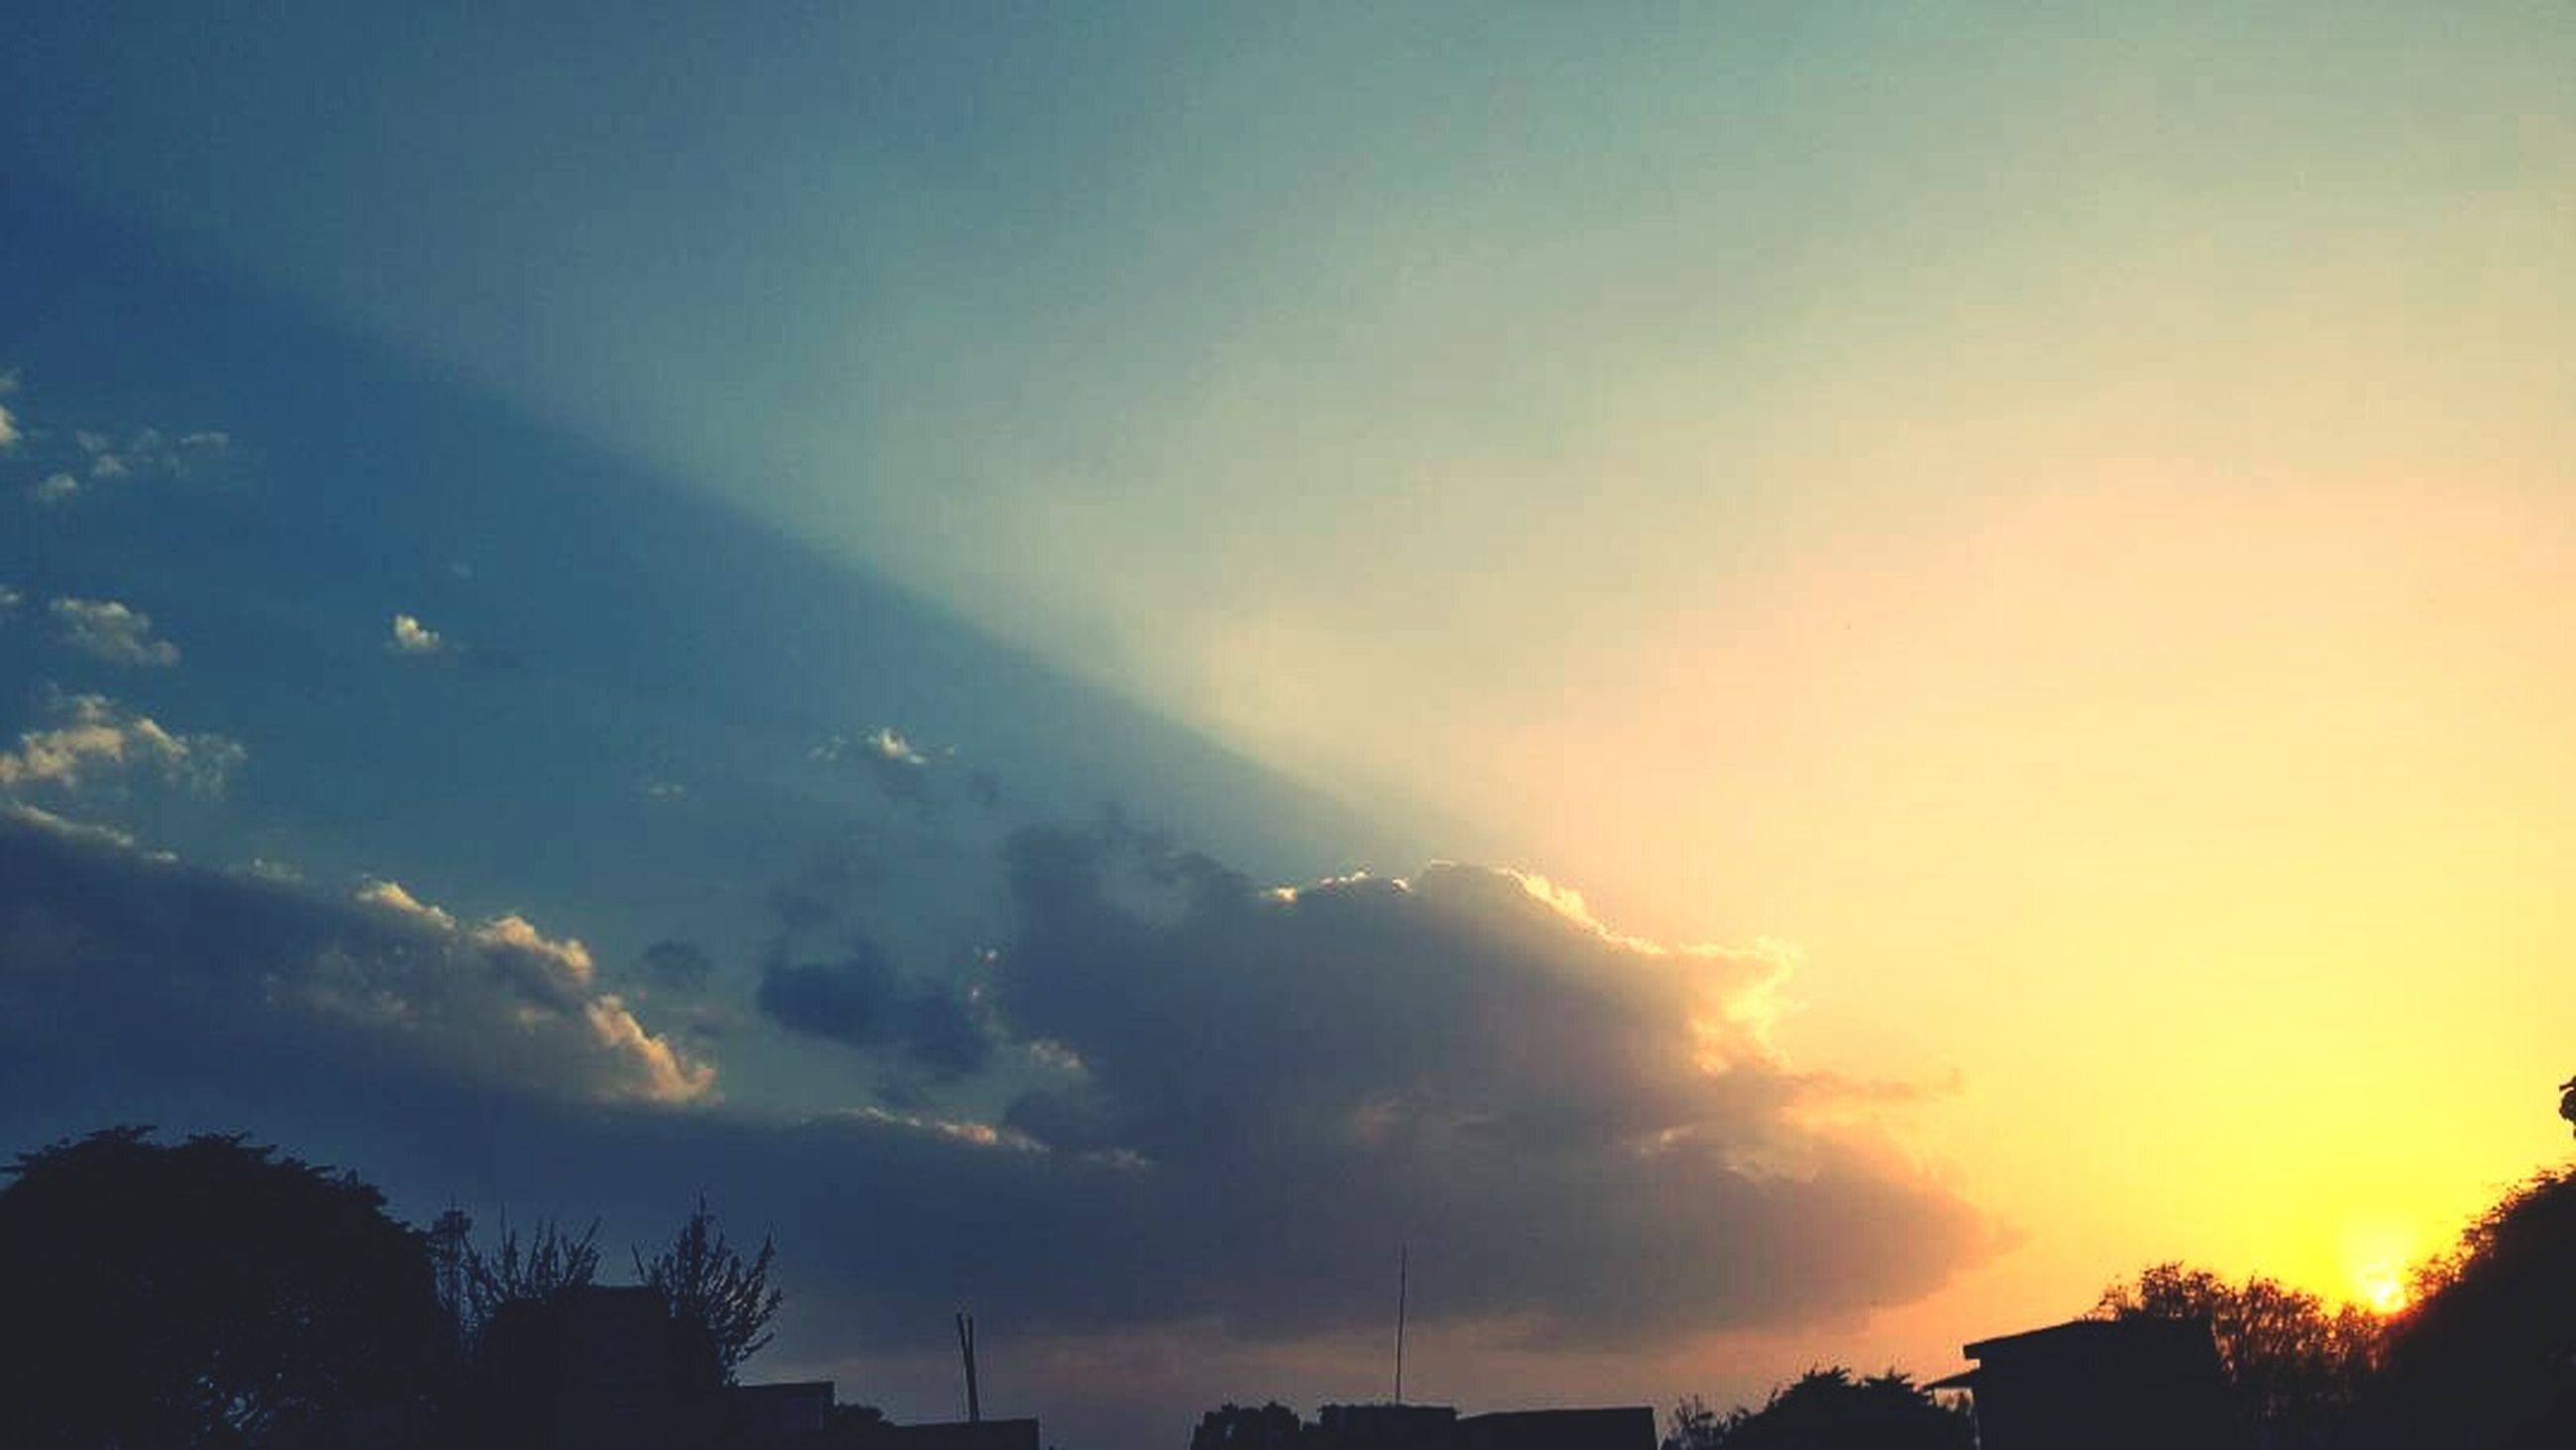 sunset, sky, cloud - sky, nature, social issues, no people, outdoors, beauty in nature, day